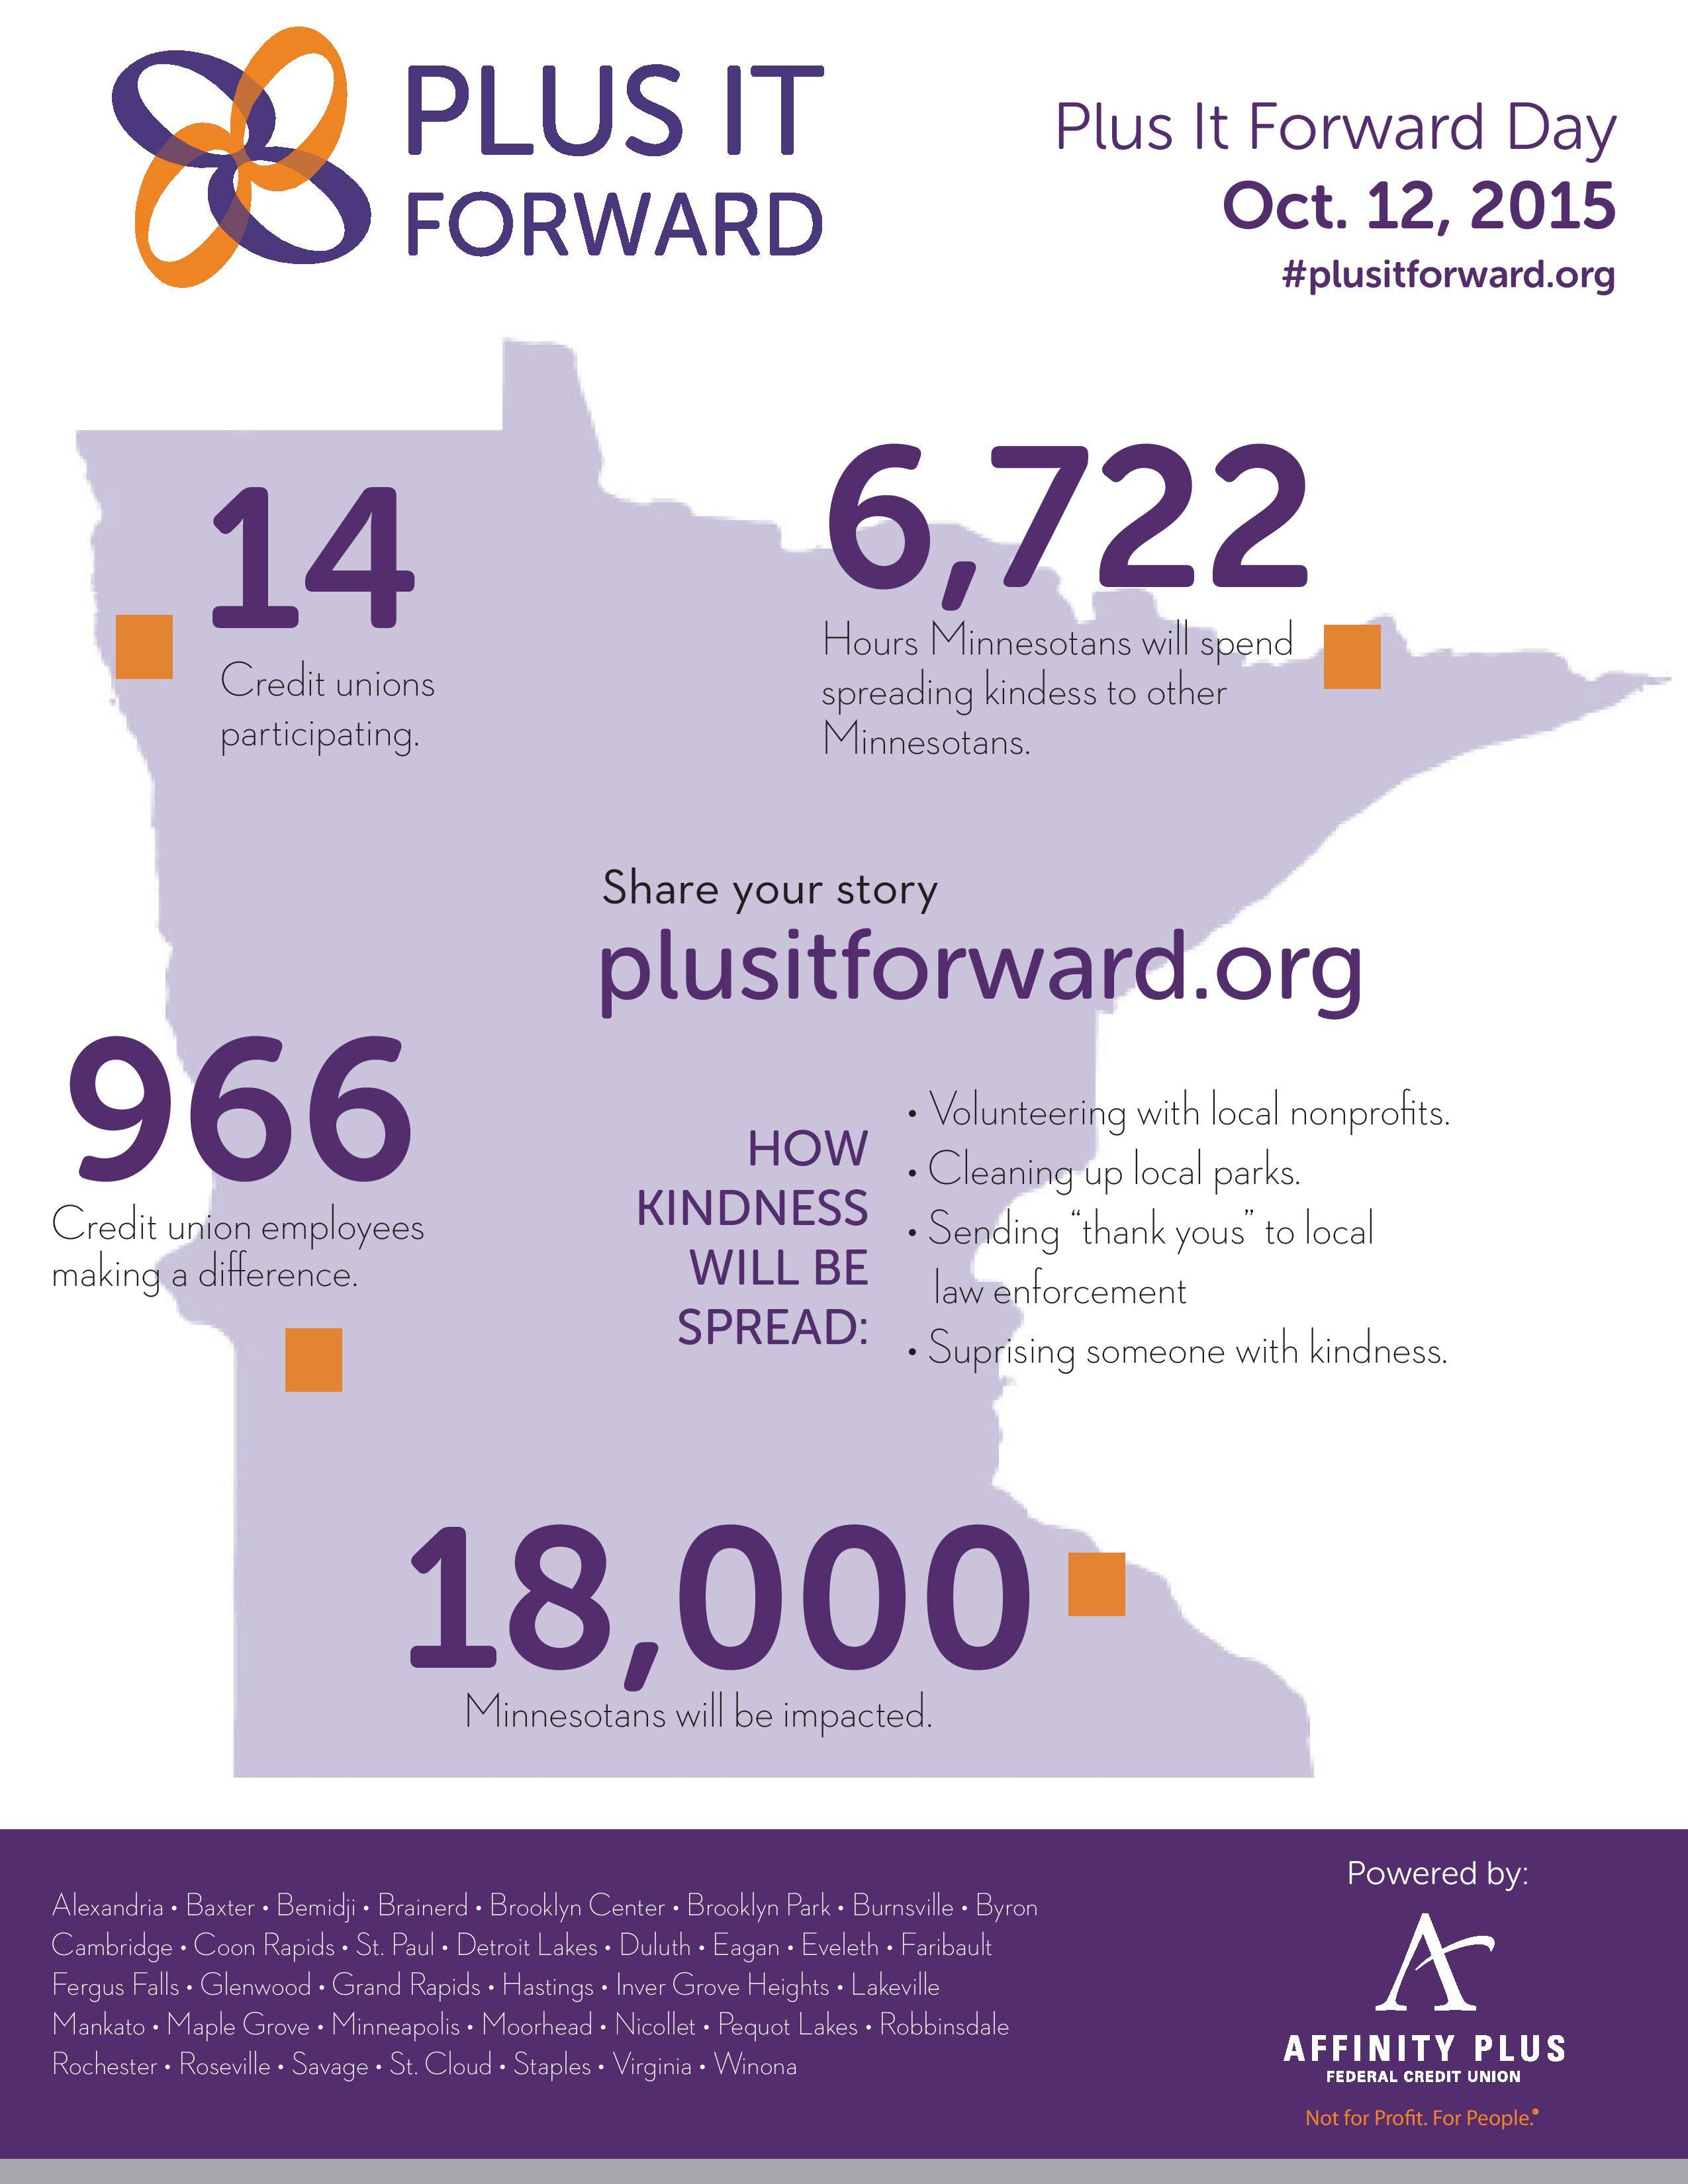 Affinity Plus Credit Union >> Credit Unions Unite To Plus It Forward In Minnesota